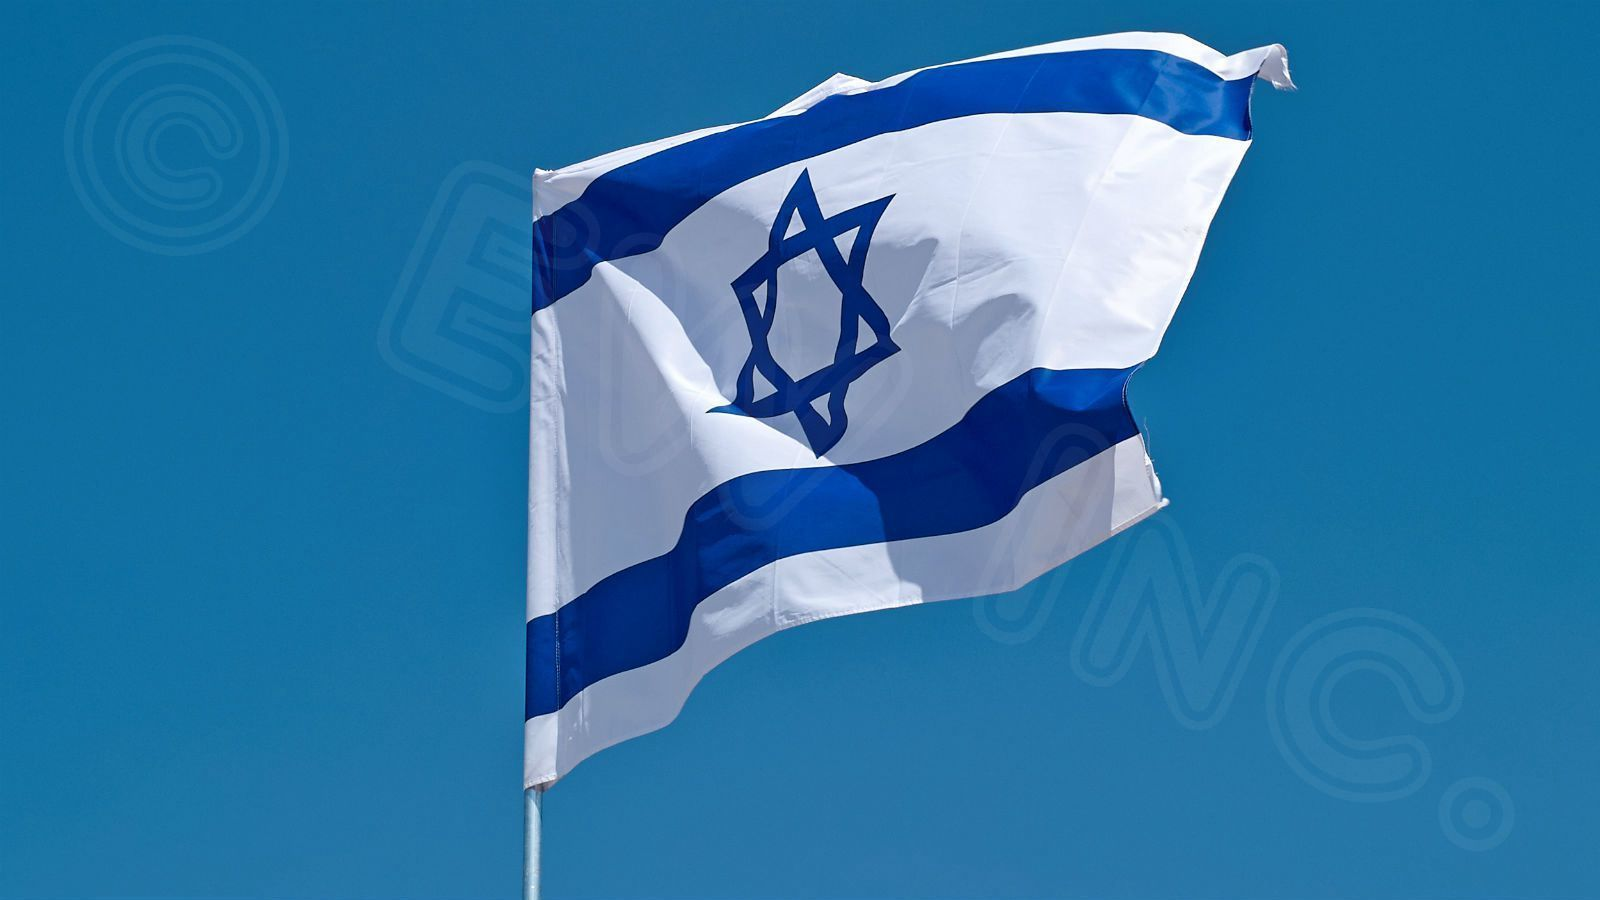 ISRAEL ISRAELI FLAG NEW 3X5 ft BETTER QUALITY USA SELLER